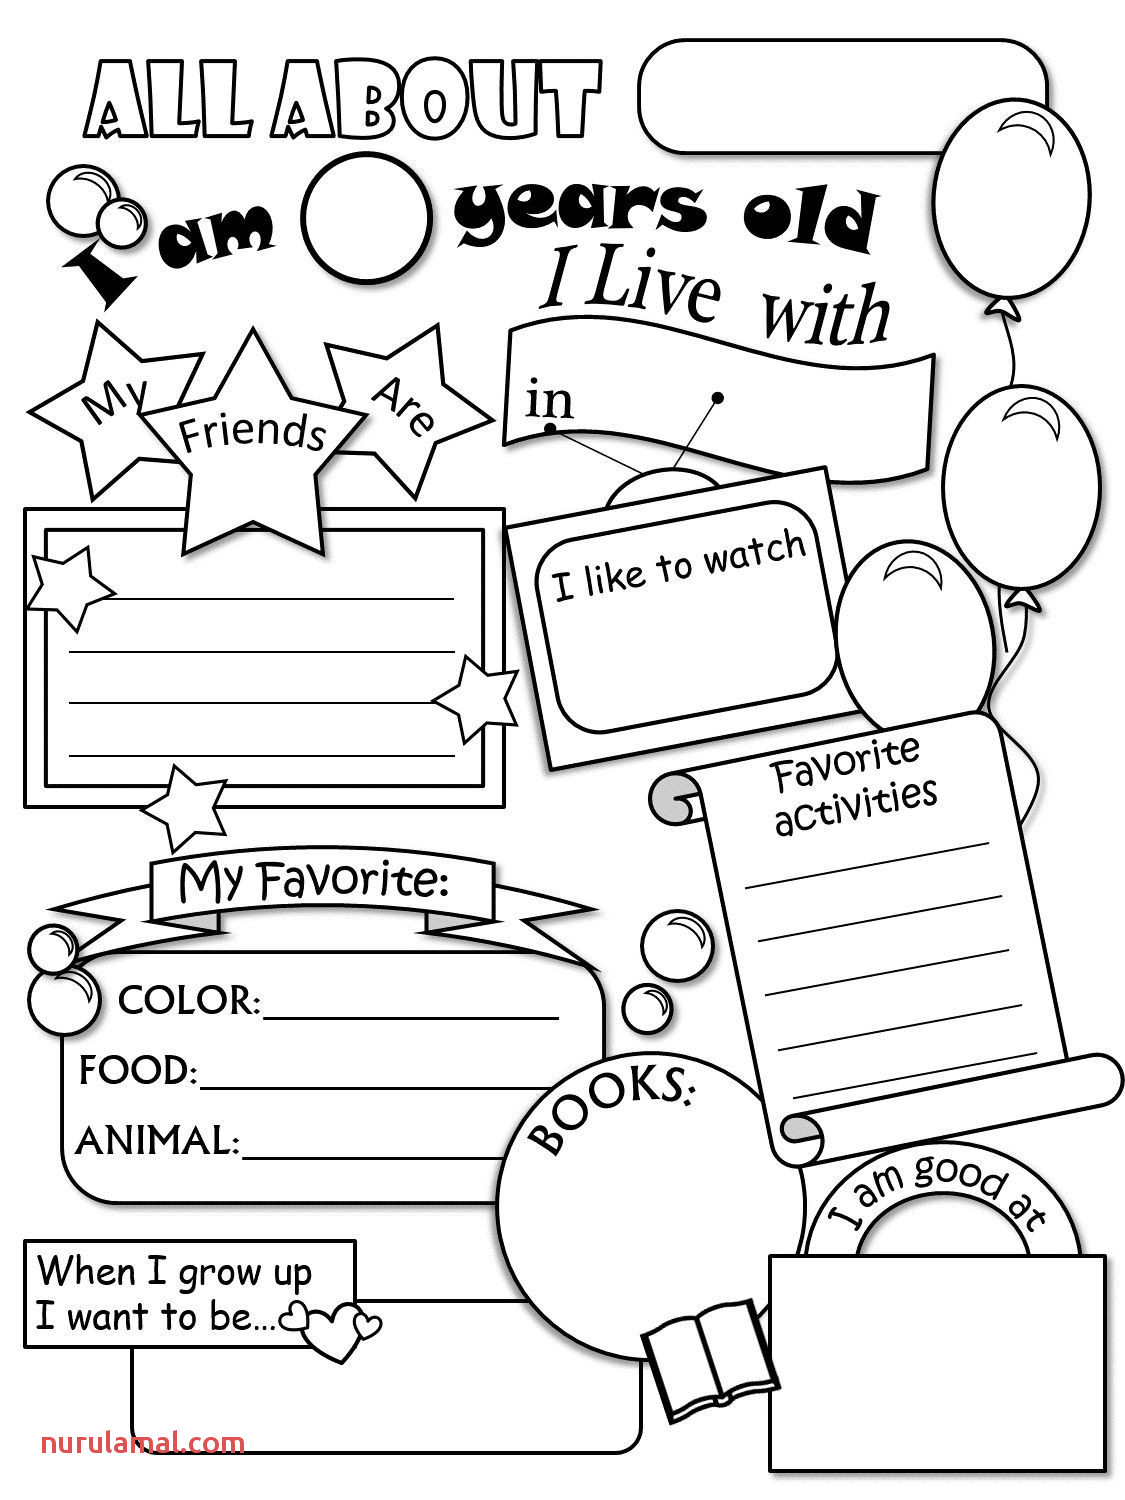 Worksheet Ideas Worksheets Image Ideas Worksheet for Kids